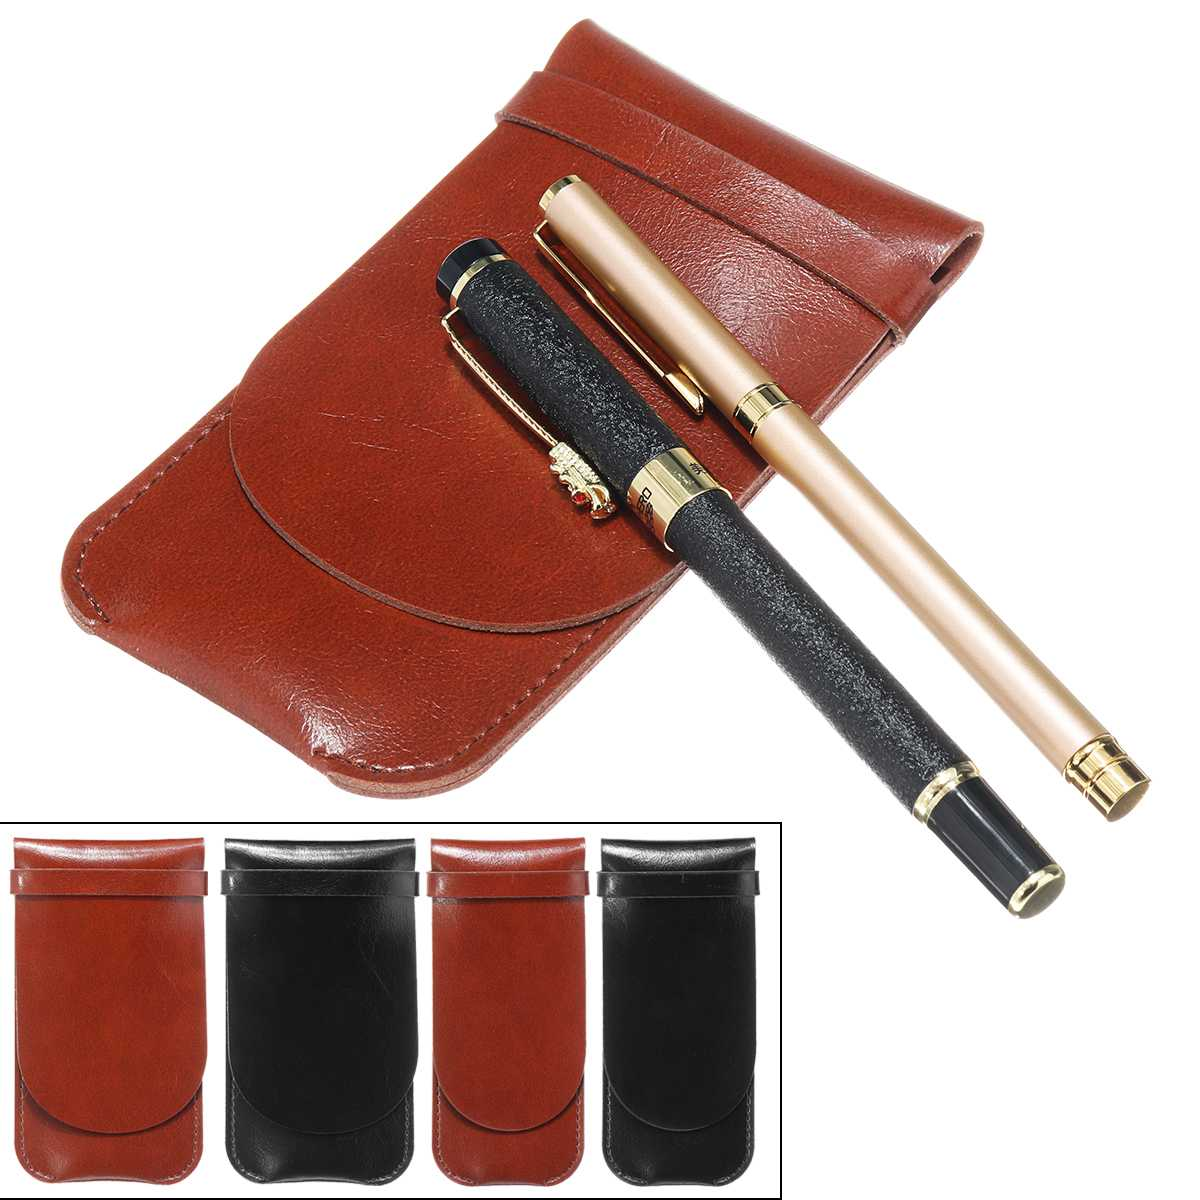 2/4/5 Pens Case Luxury Brown /Blcack Leather Pencil Case/Bag For Roller Ball Pen / Fountain Pen /Ballpoint Pen Binder Stationery